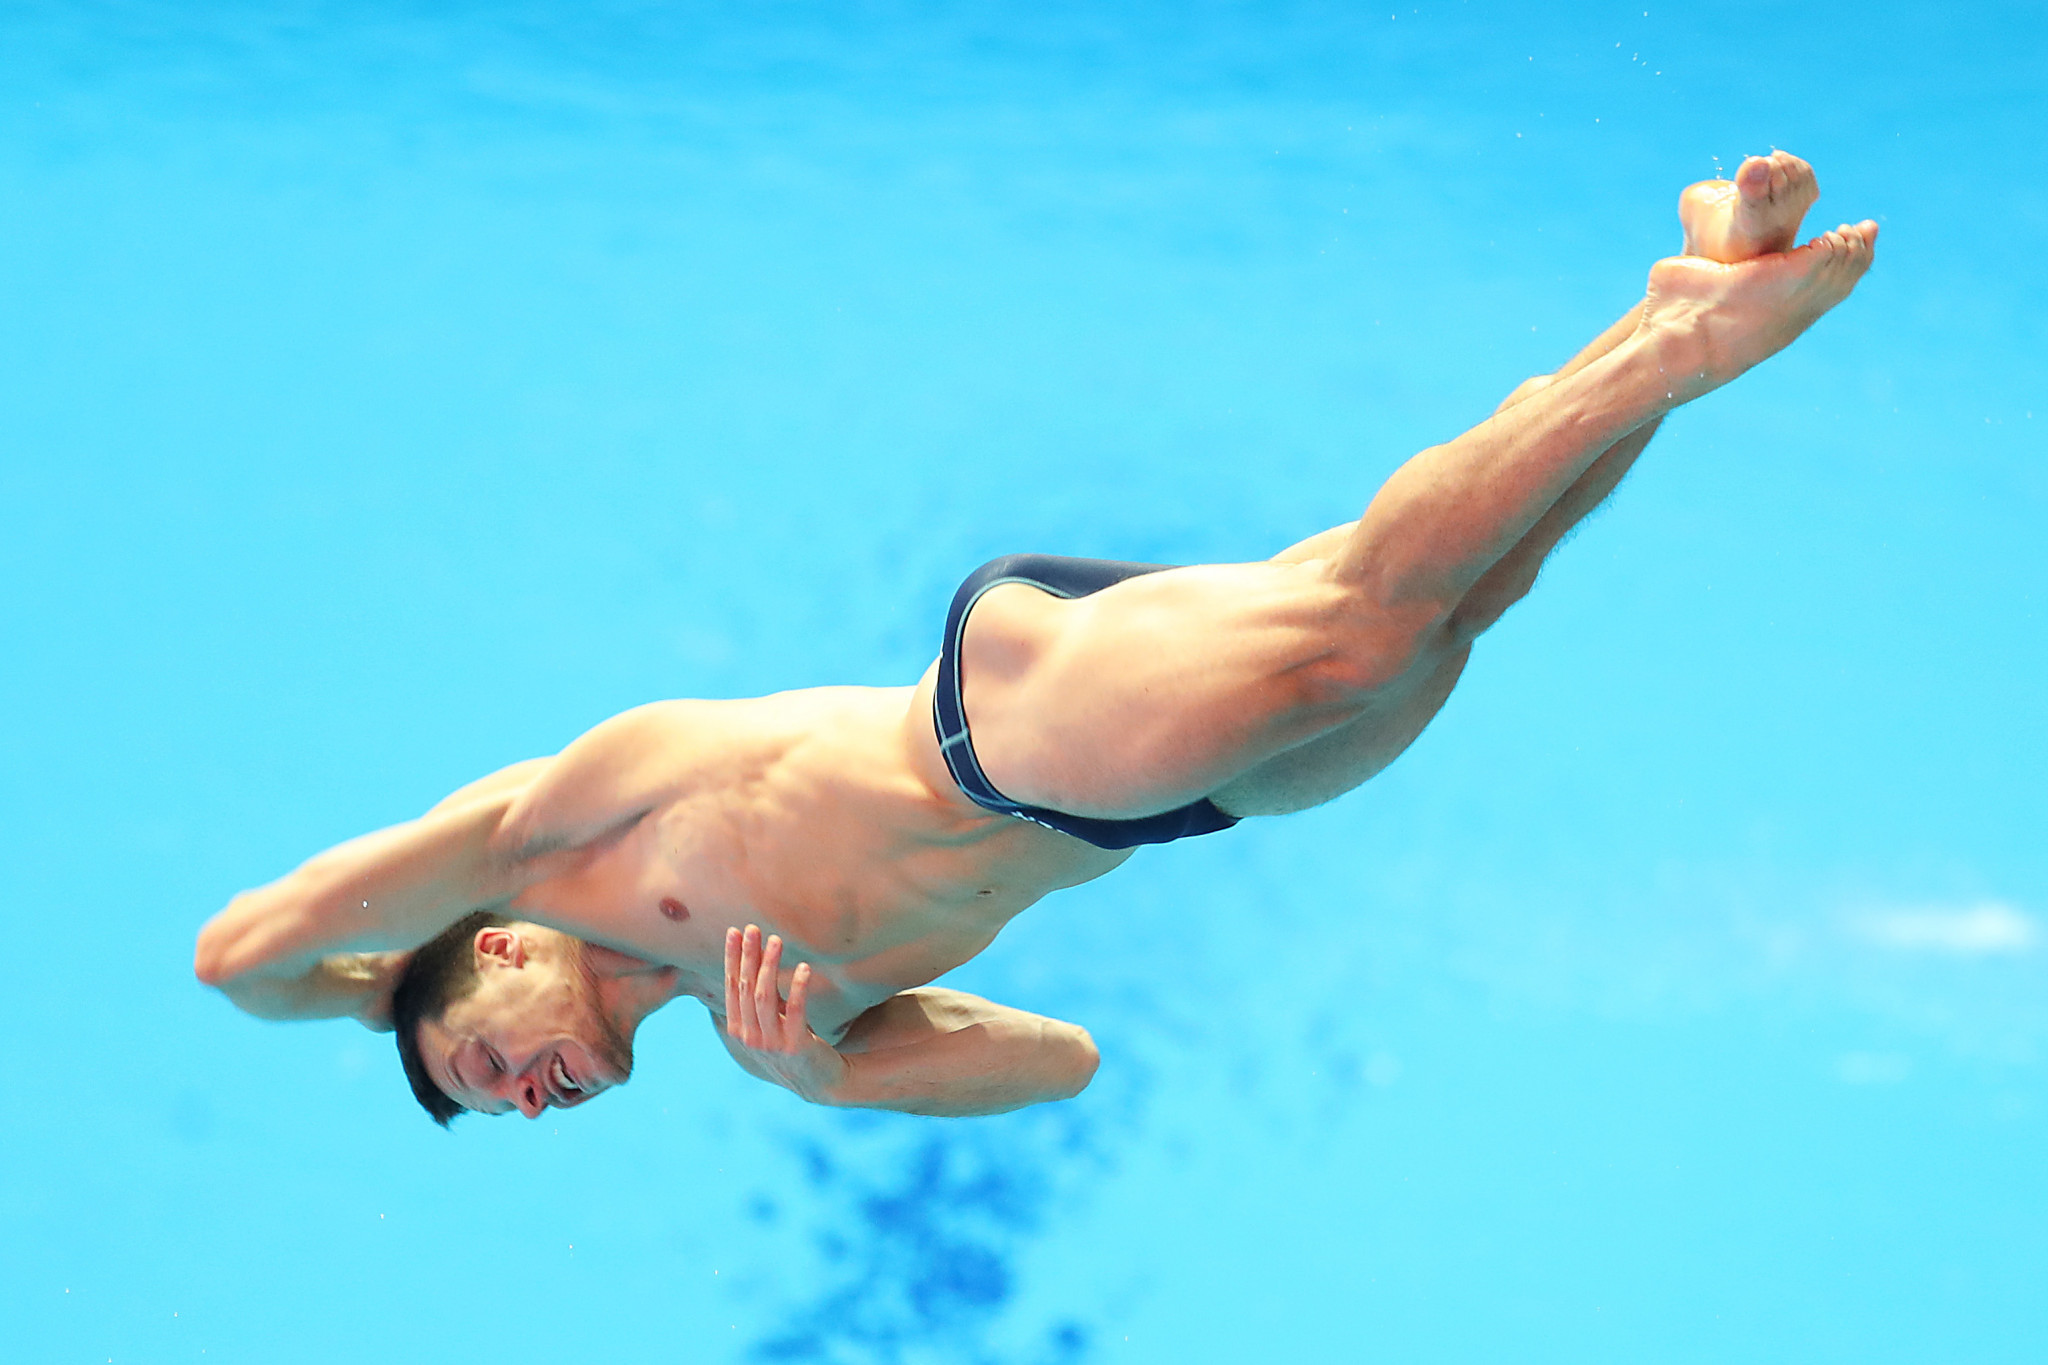 Germany's Patrick Hausding has his second gold in three days at Liko Sports Centre after adding 1m springboard victory to his win in the mixed team event ©Getty Images